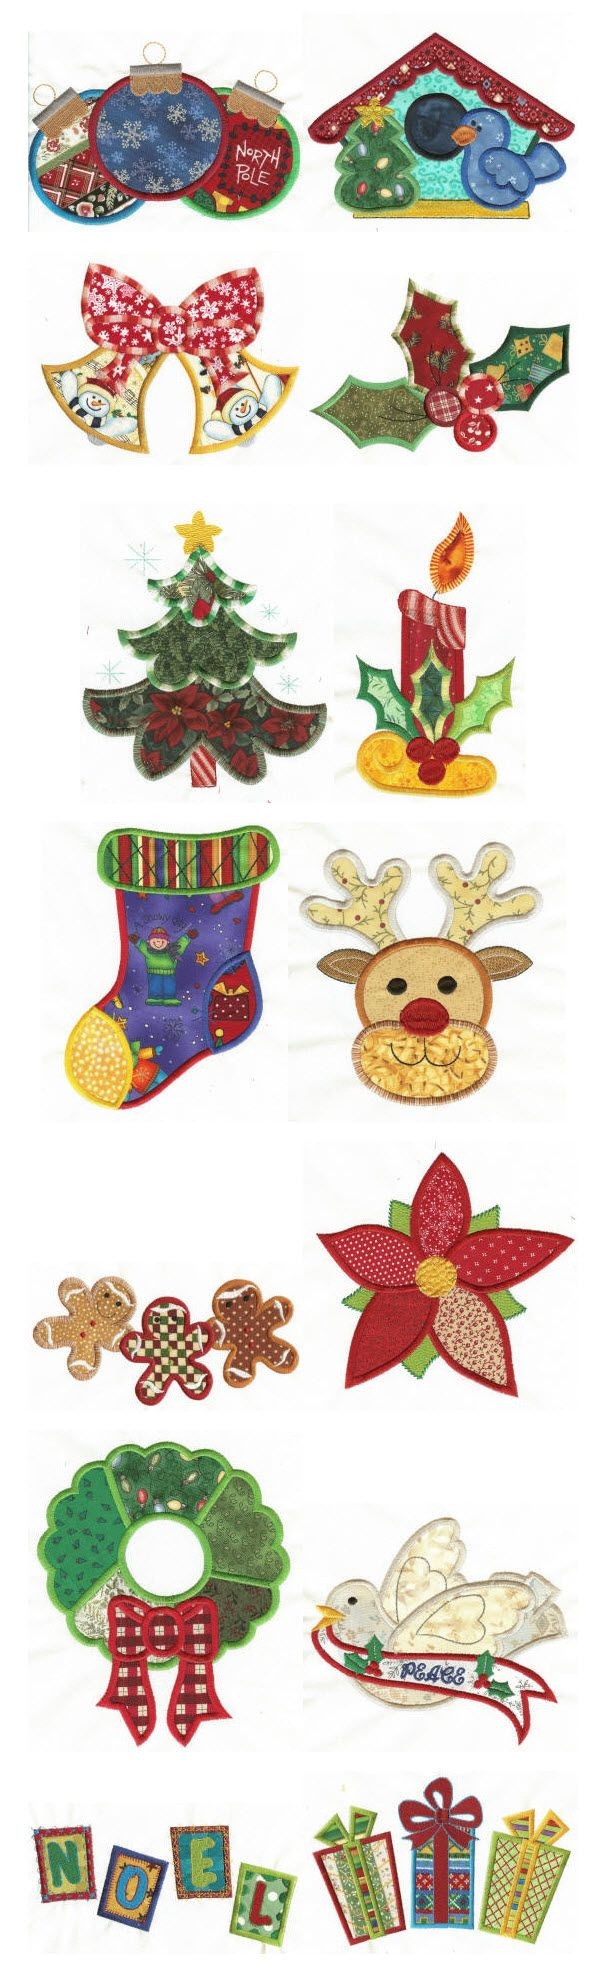 Best free christmas clip art ideas on pinterest